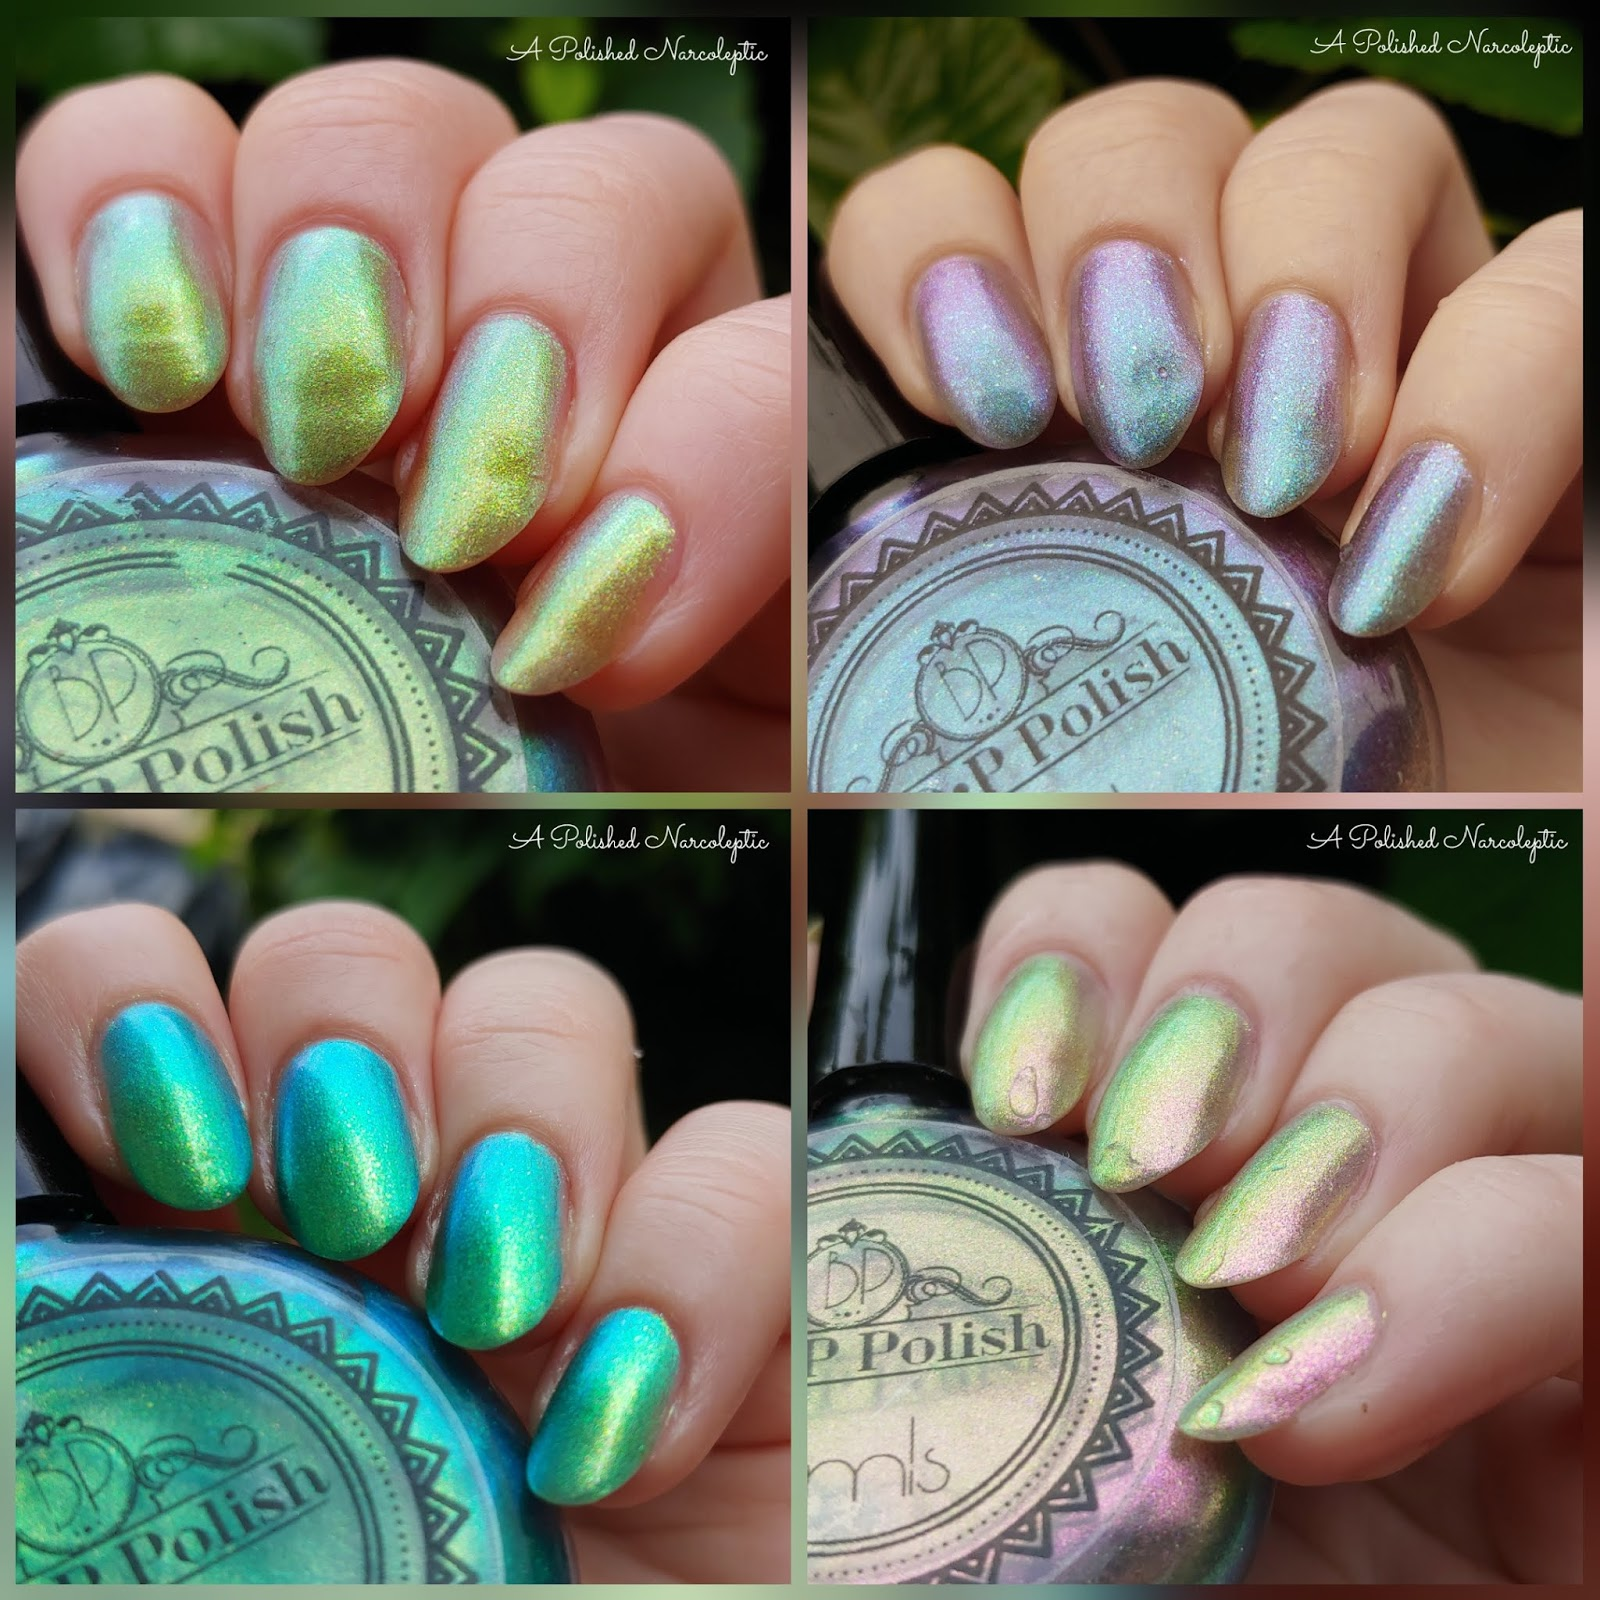 P.O.P Polish, Pastel Multichrome Oil Slick Collection - A Polished ...